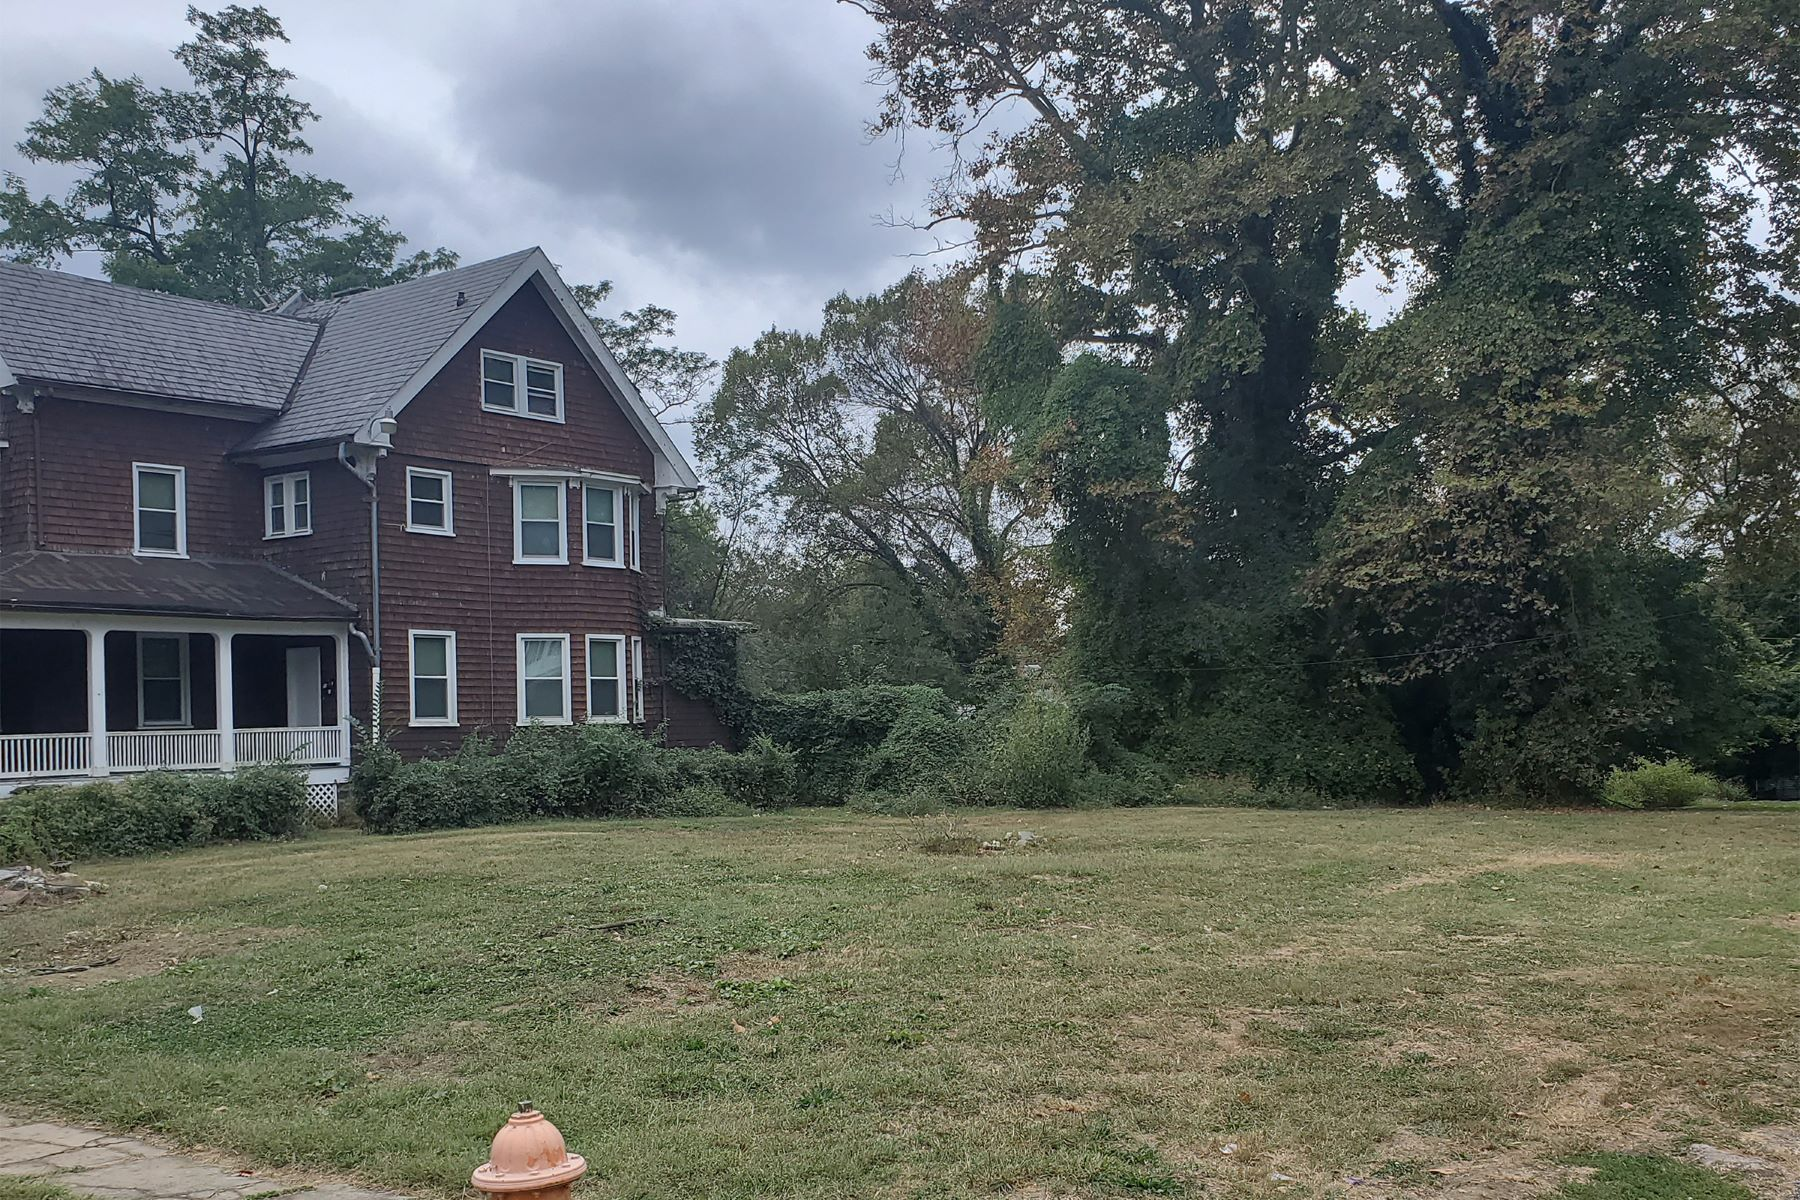 Land for Sale at Build to Suit Custom Home Opportunity 2106 Elsinore Avenue Baltimore, Maryland 21216 United States